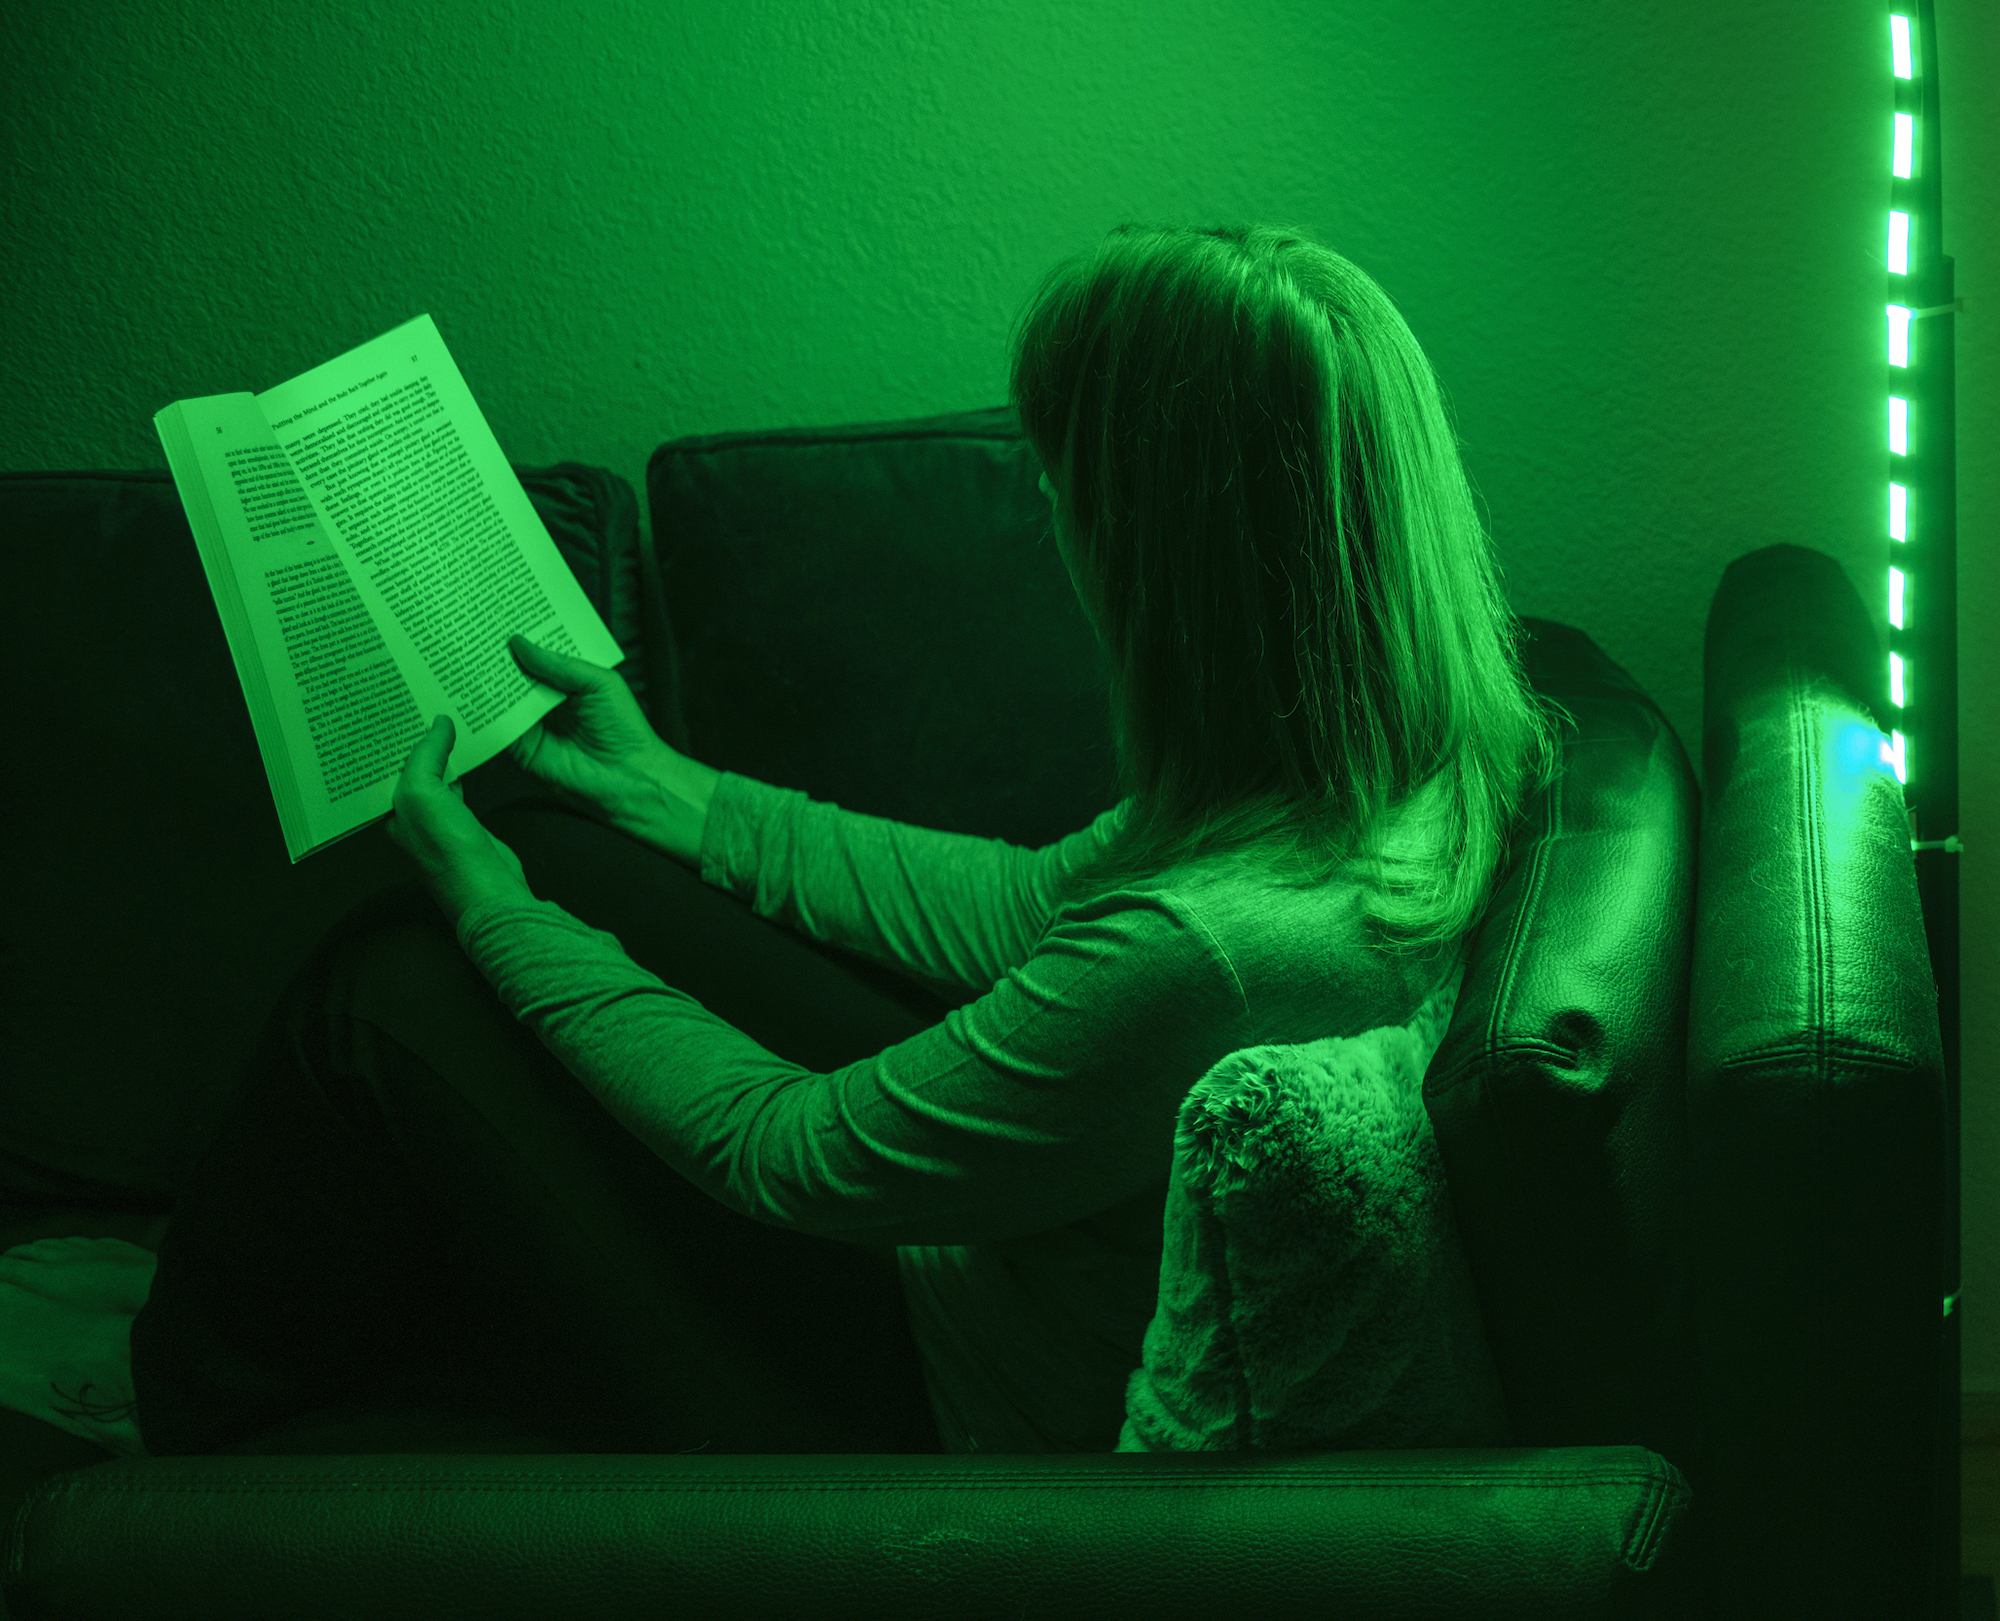 a person reading by a green light